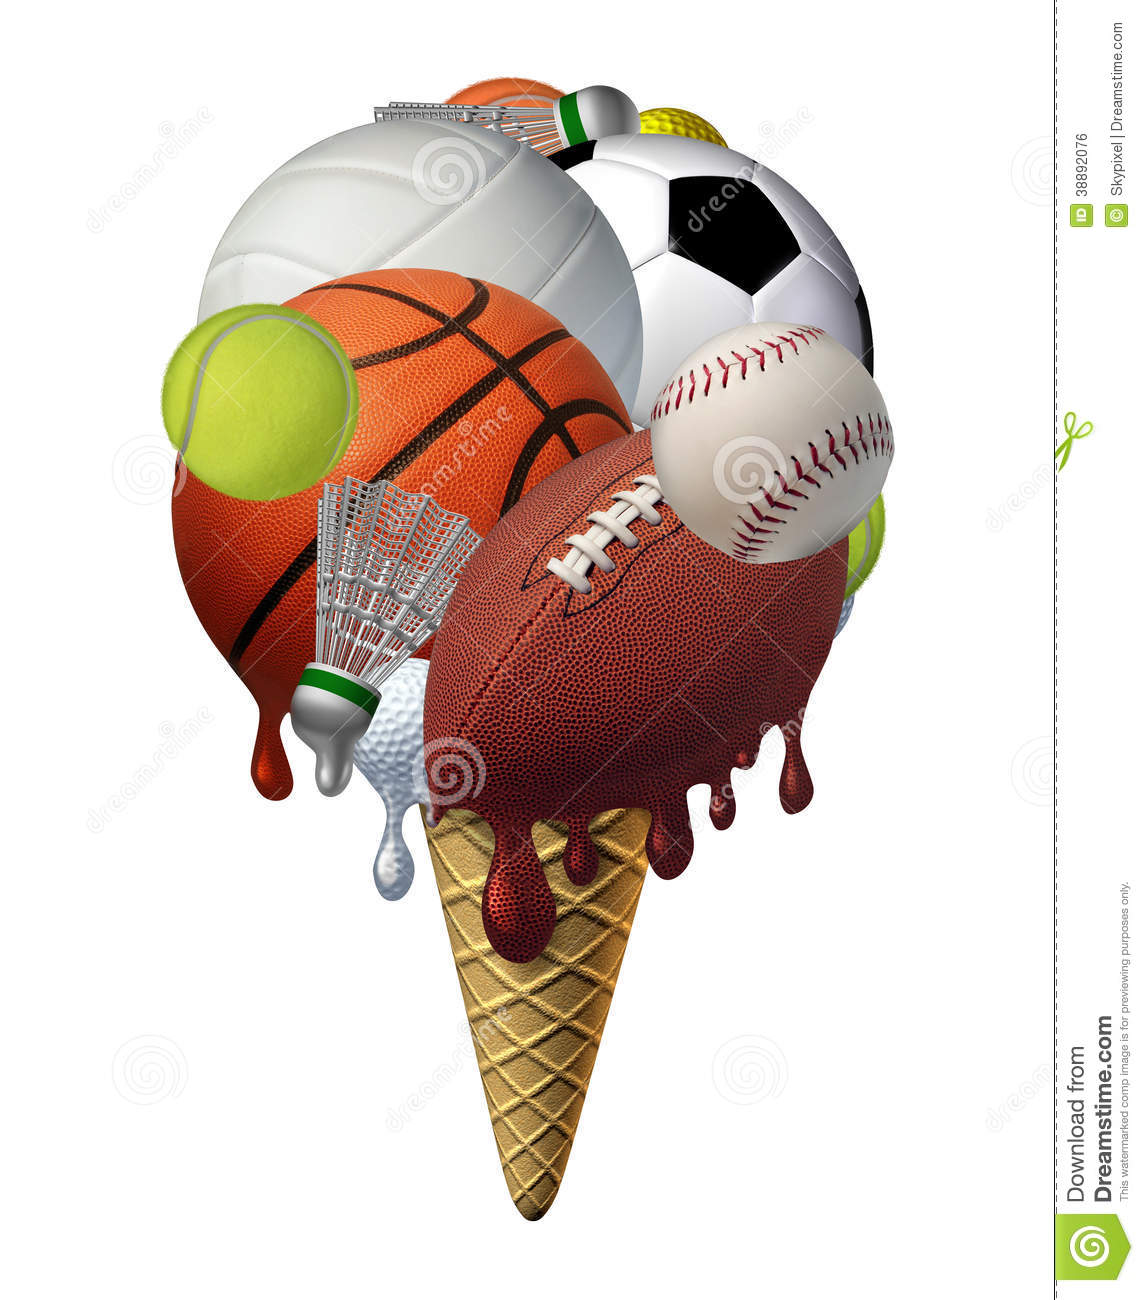 summer sports stock illustration image 38892076 football clipart free black and white football clipart free black and white